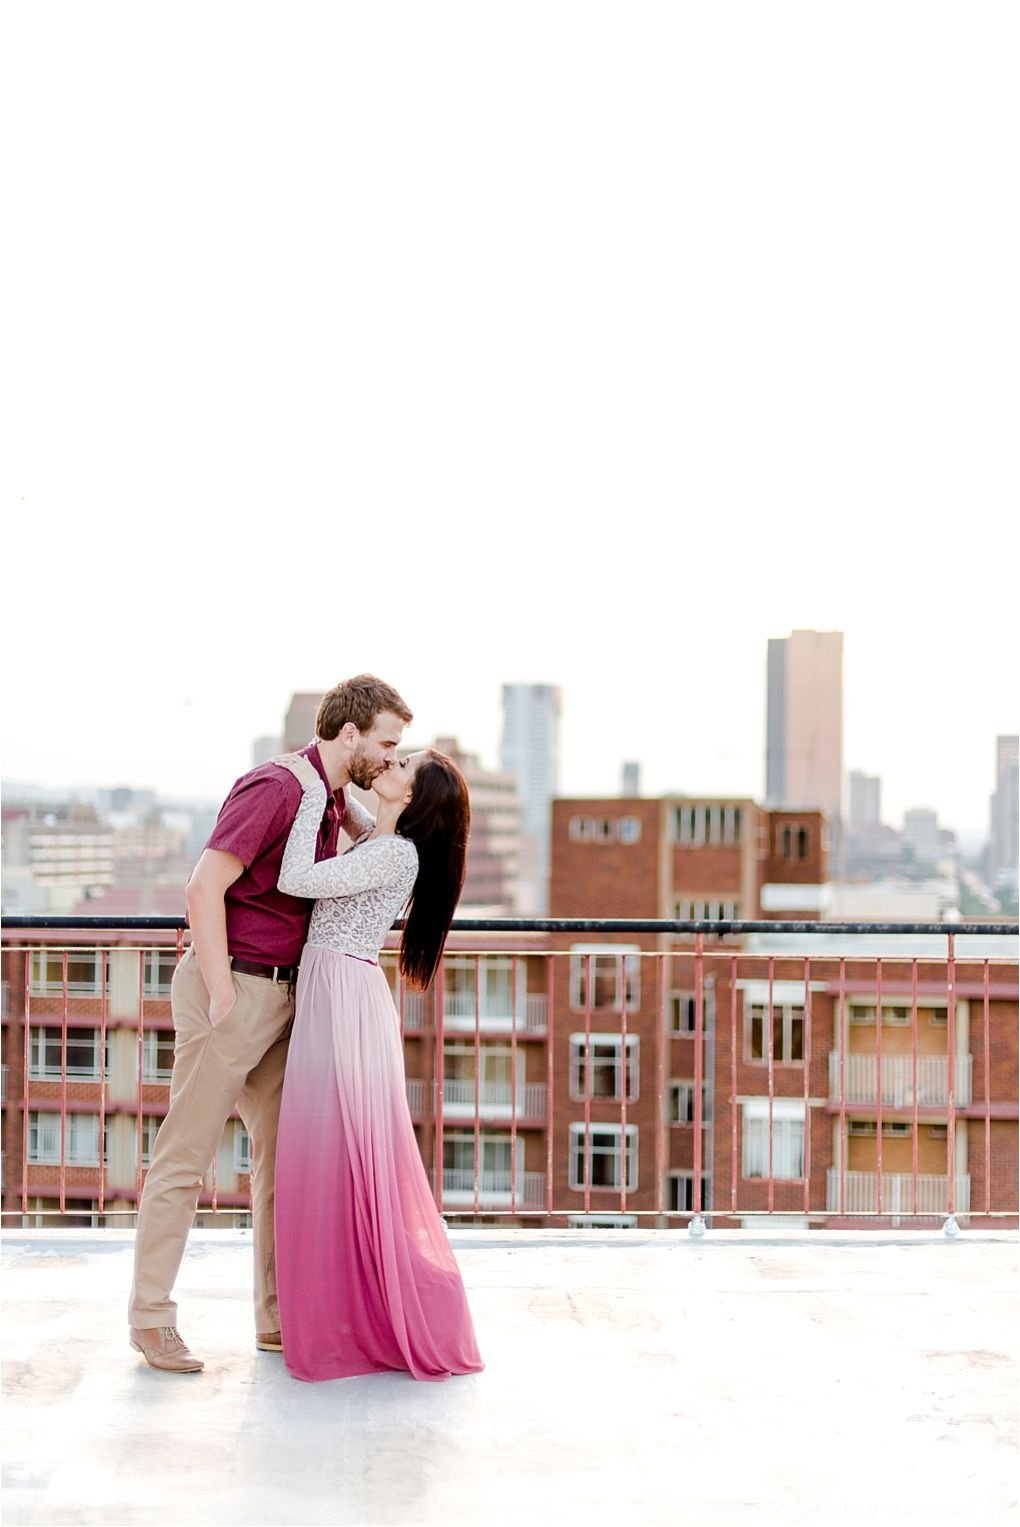 Engagement shoot at 012Central Pretoria by D'amor Photography, Gauteng Wedding Photographer 01